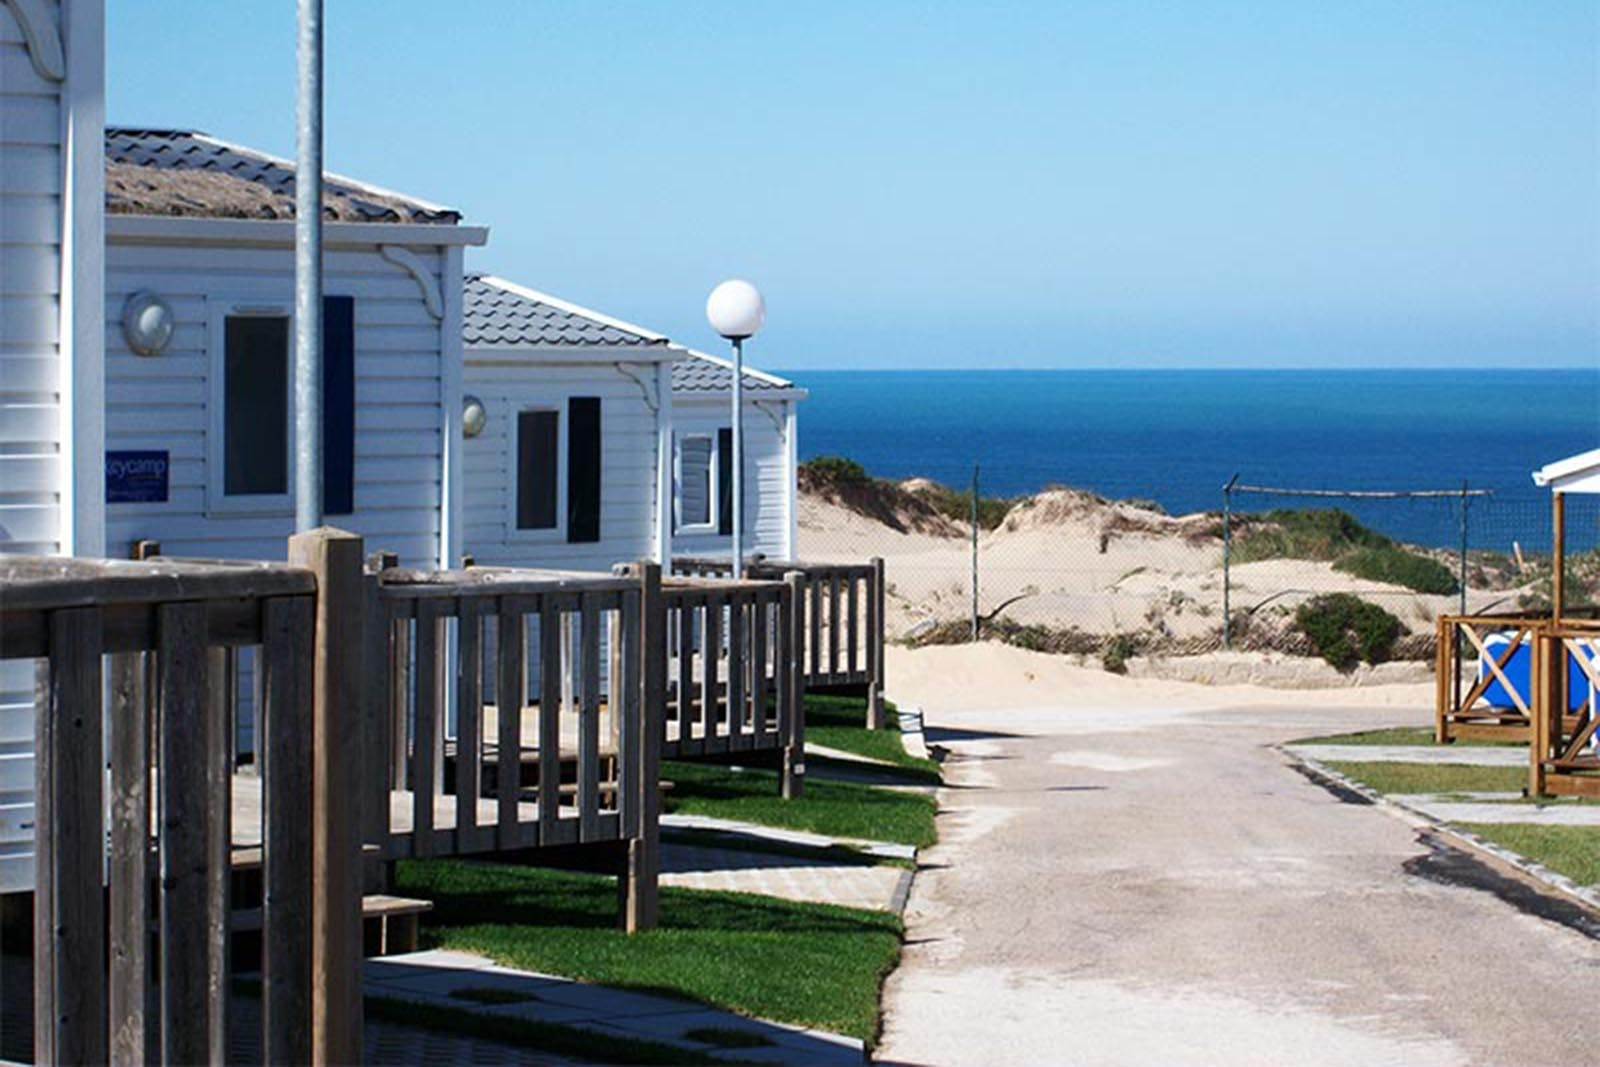 Campsite overlooking the Atlantic Ocean and Guincho Beach in Portugal.